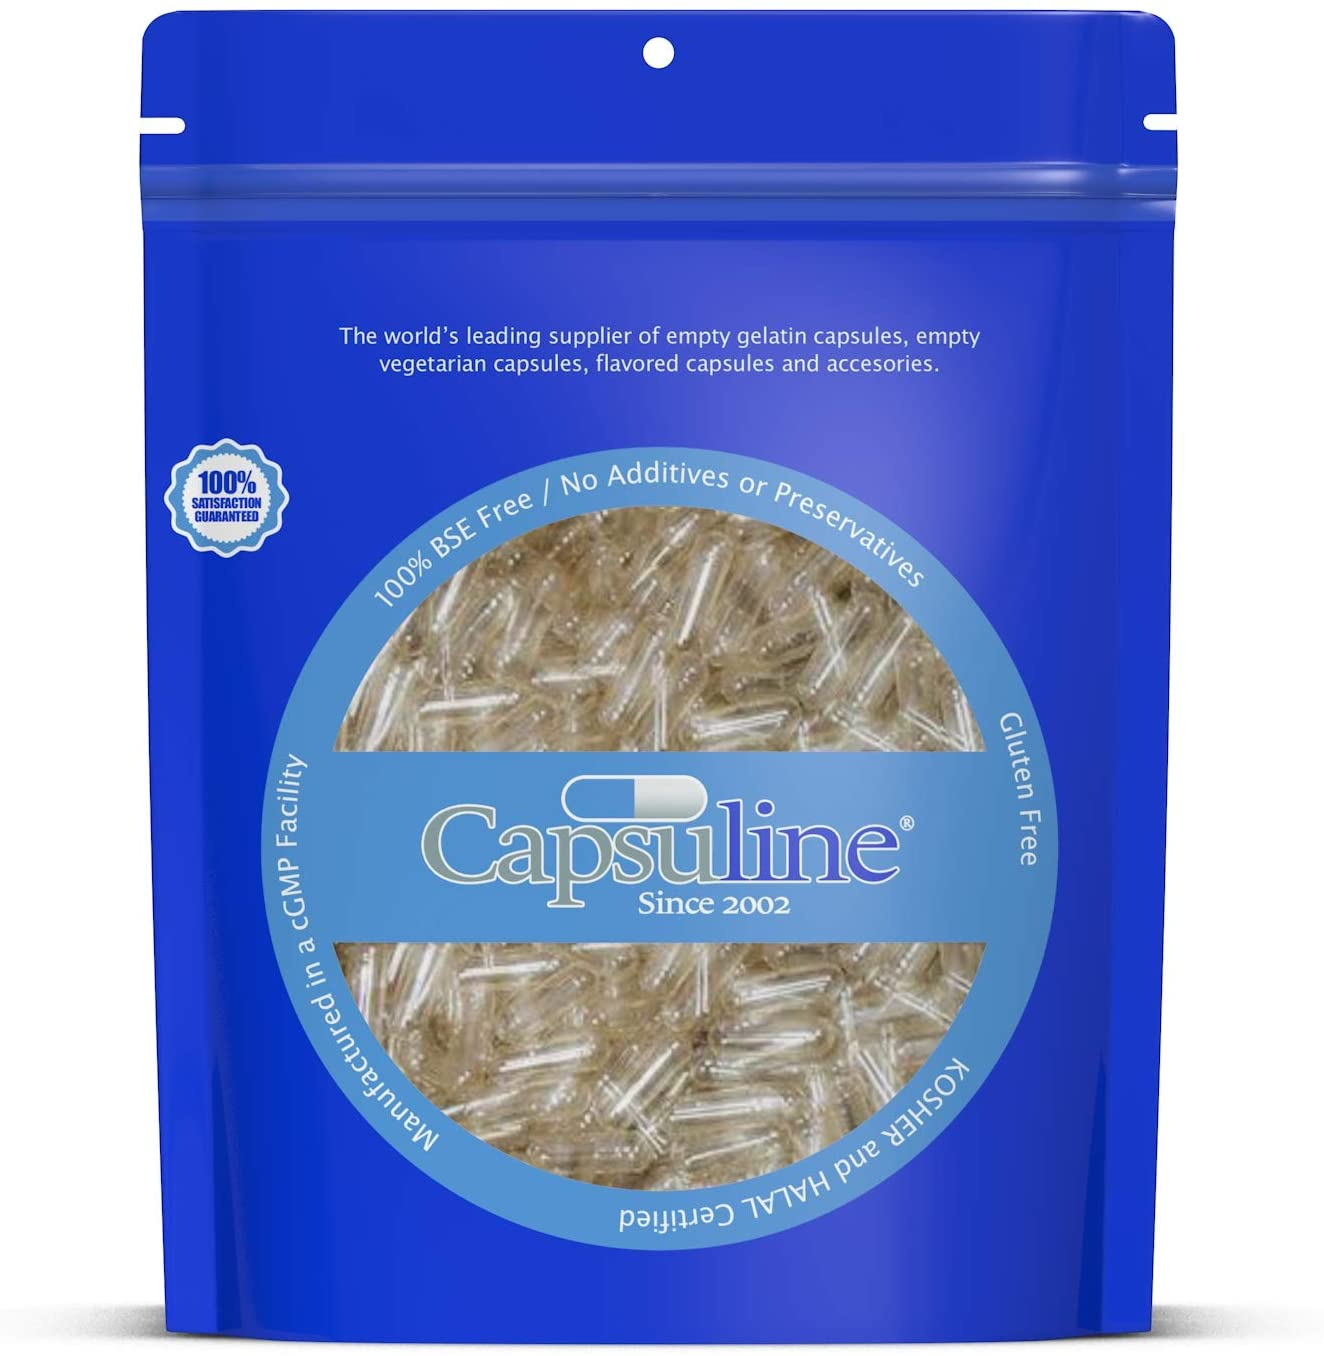 Capsuline Max 77% Max 40% OFF OFF - Size 4 Clear Gelatin Empty 10000 Count Capsules